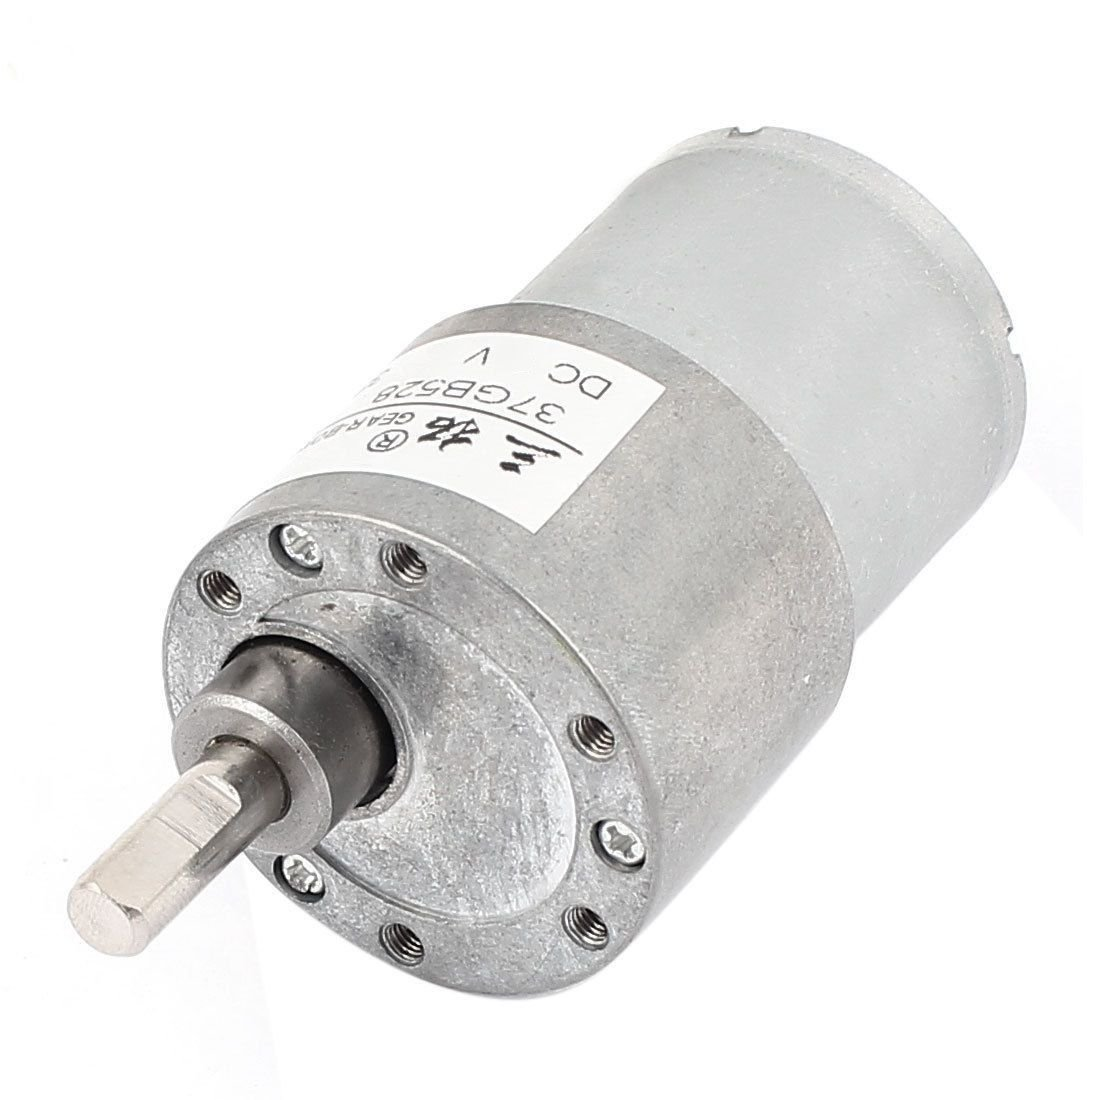 DC24V 400RPM 0.15A 0.35KG.cm DC Gear Box Reducer Variable Speed Motor Reversible